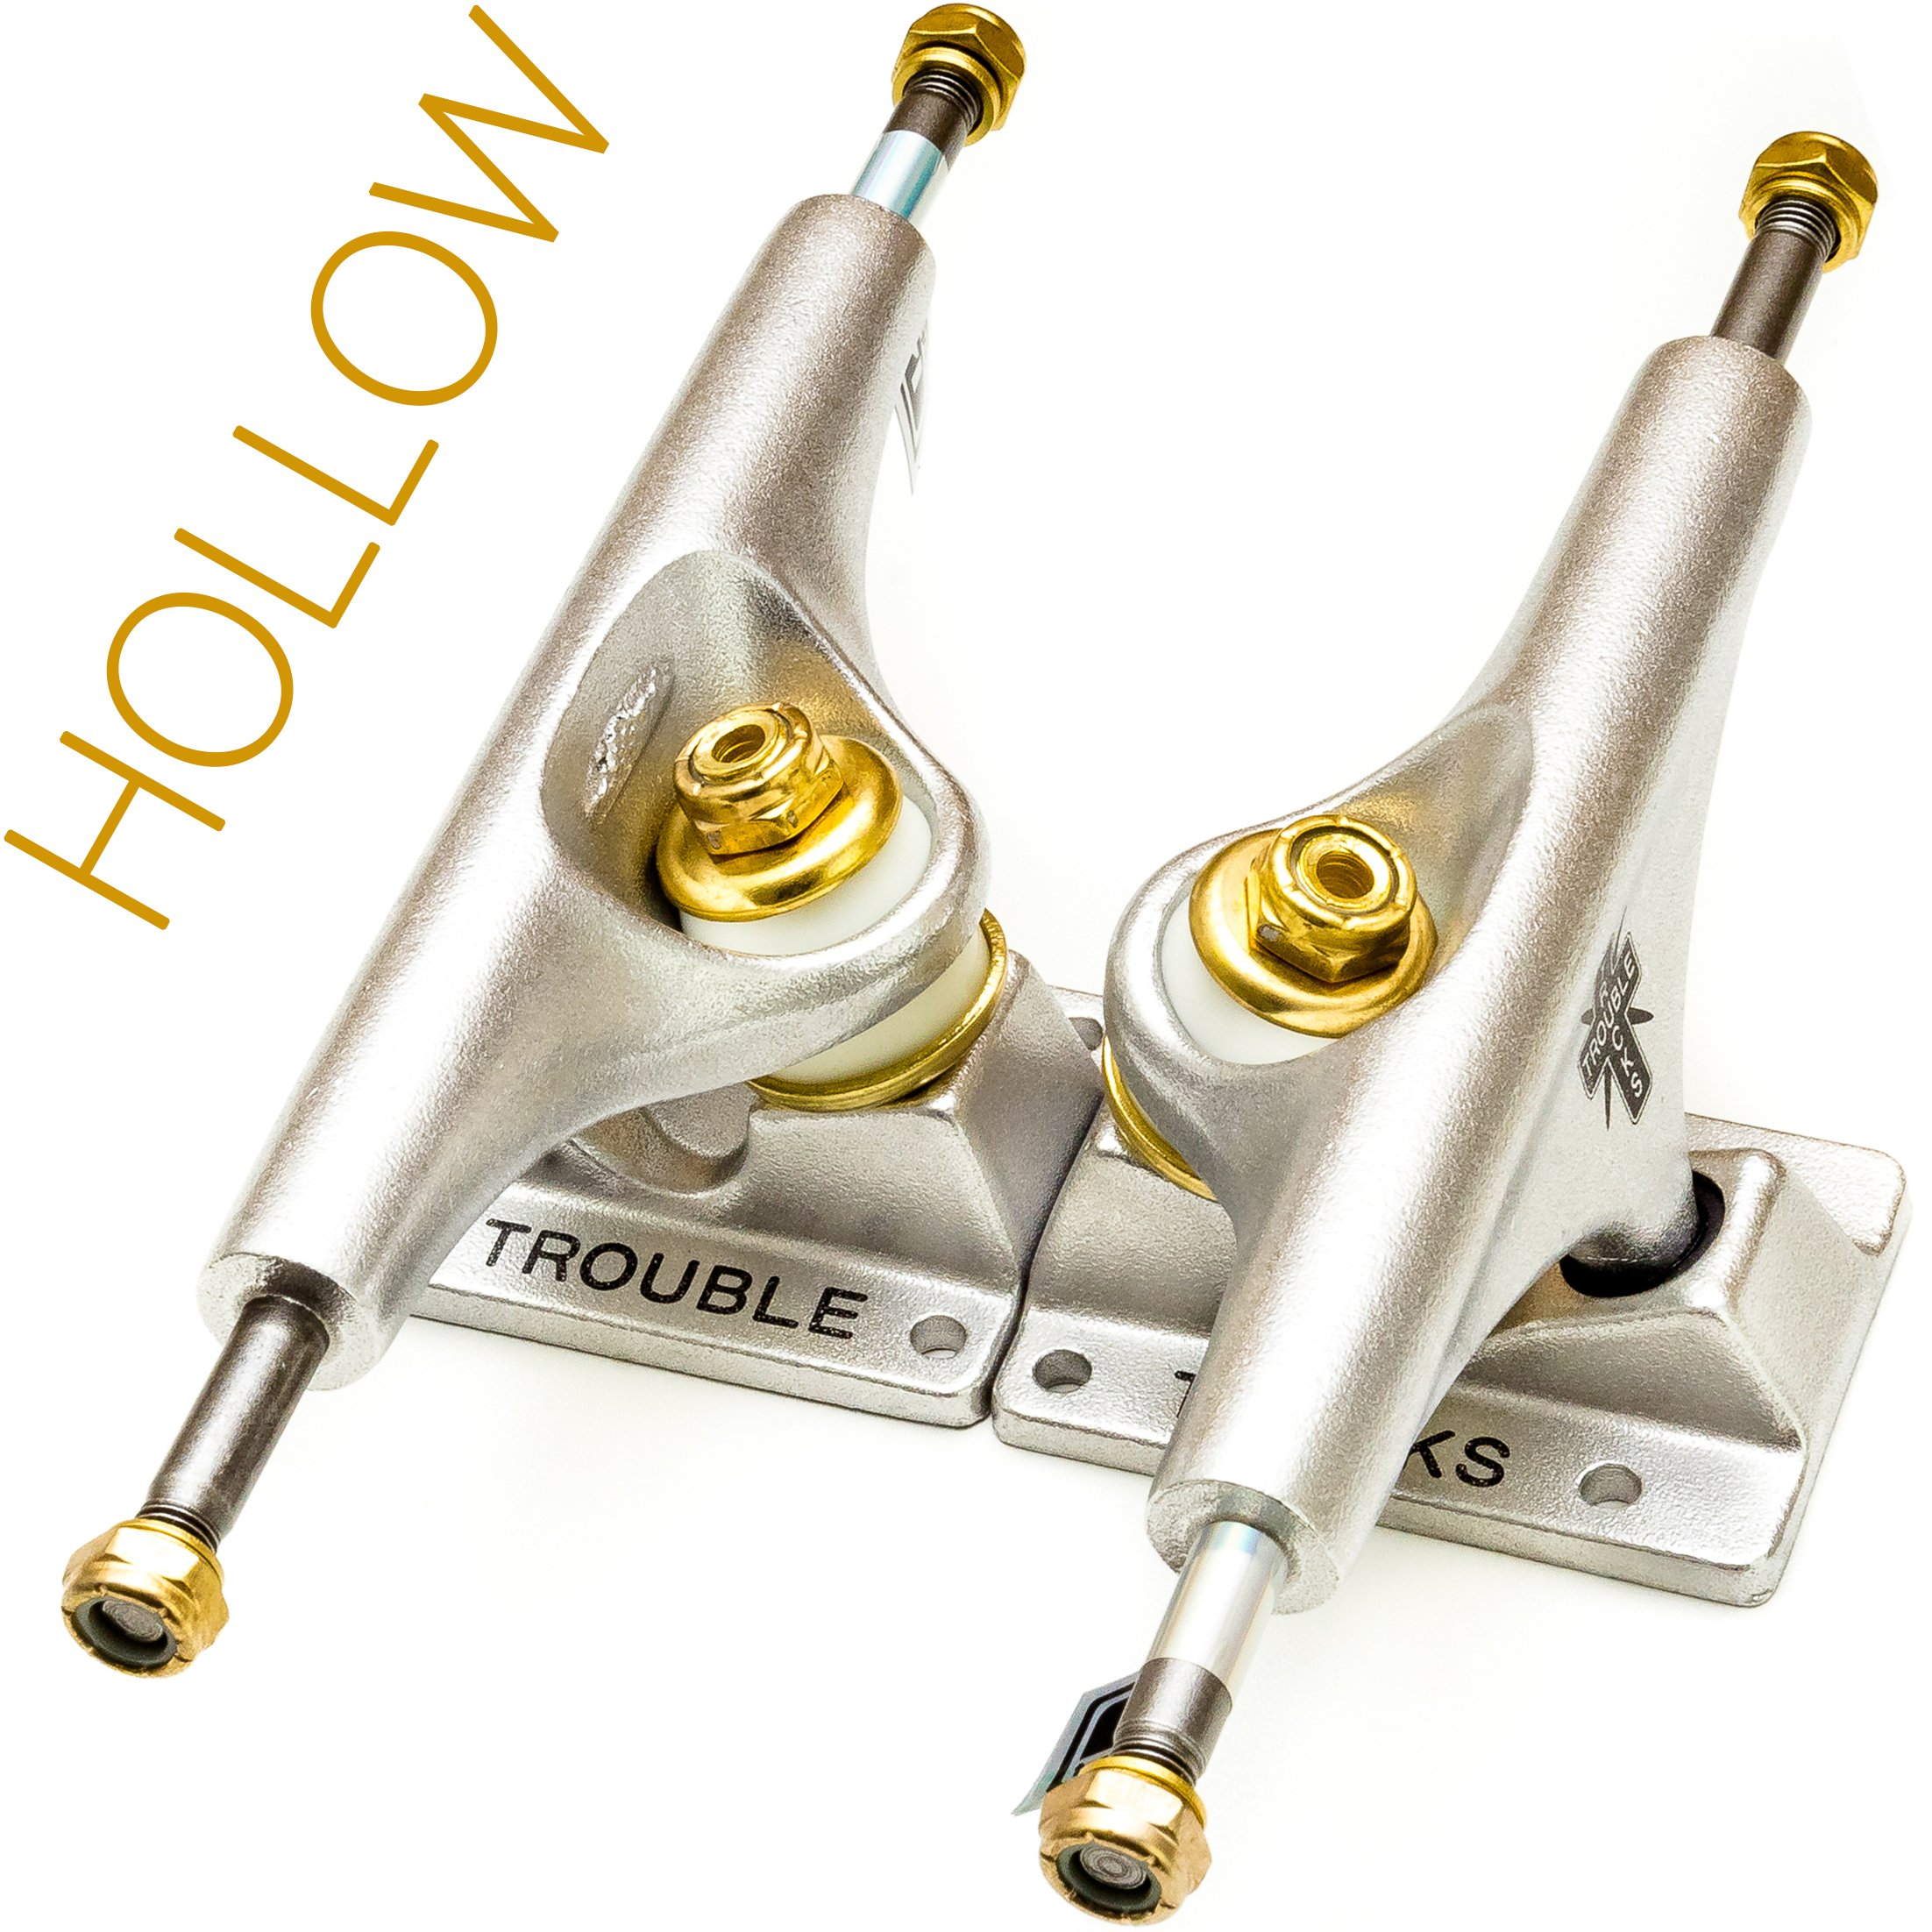 Trouble Trucks Skateboard Truck Hollow Light - 139mm Hanger 8.25'' Axle - Matte Gold Silver - Set of 2 (T2) by TROUBLE SKATEBOARDS